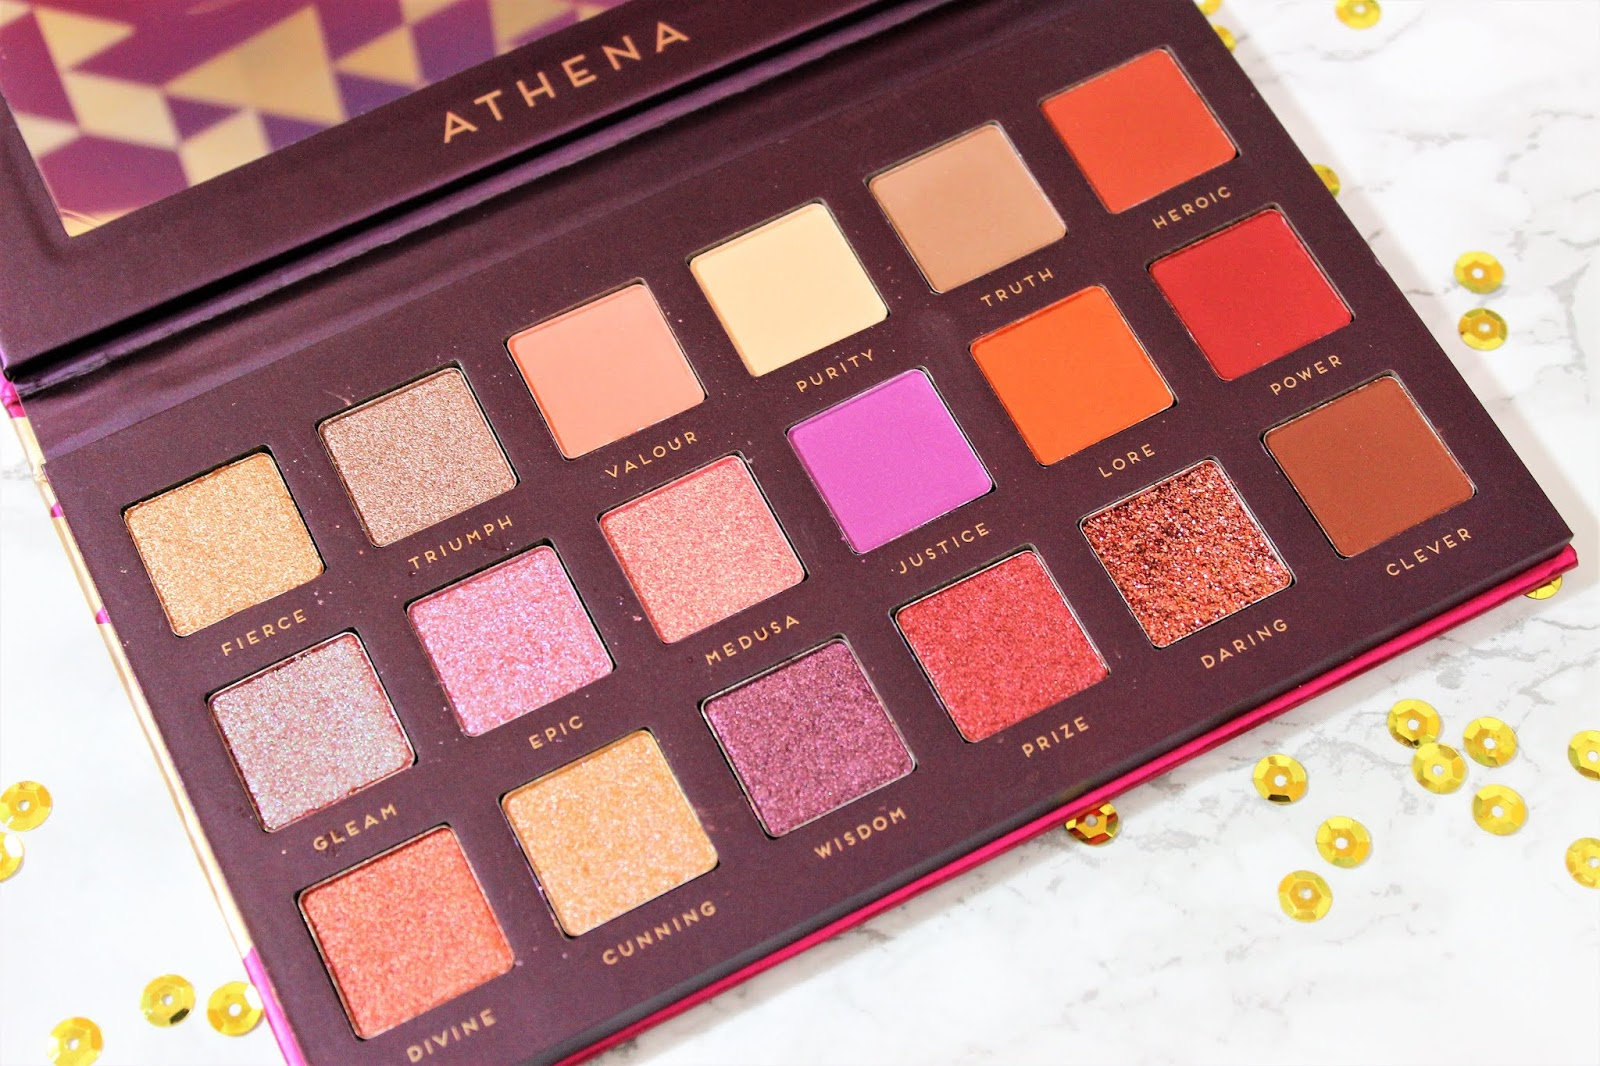 Athena Palette review